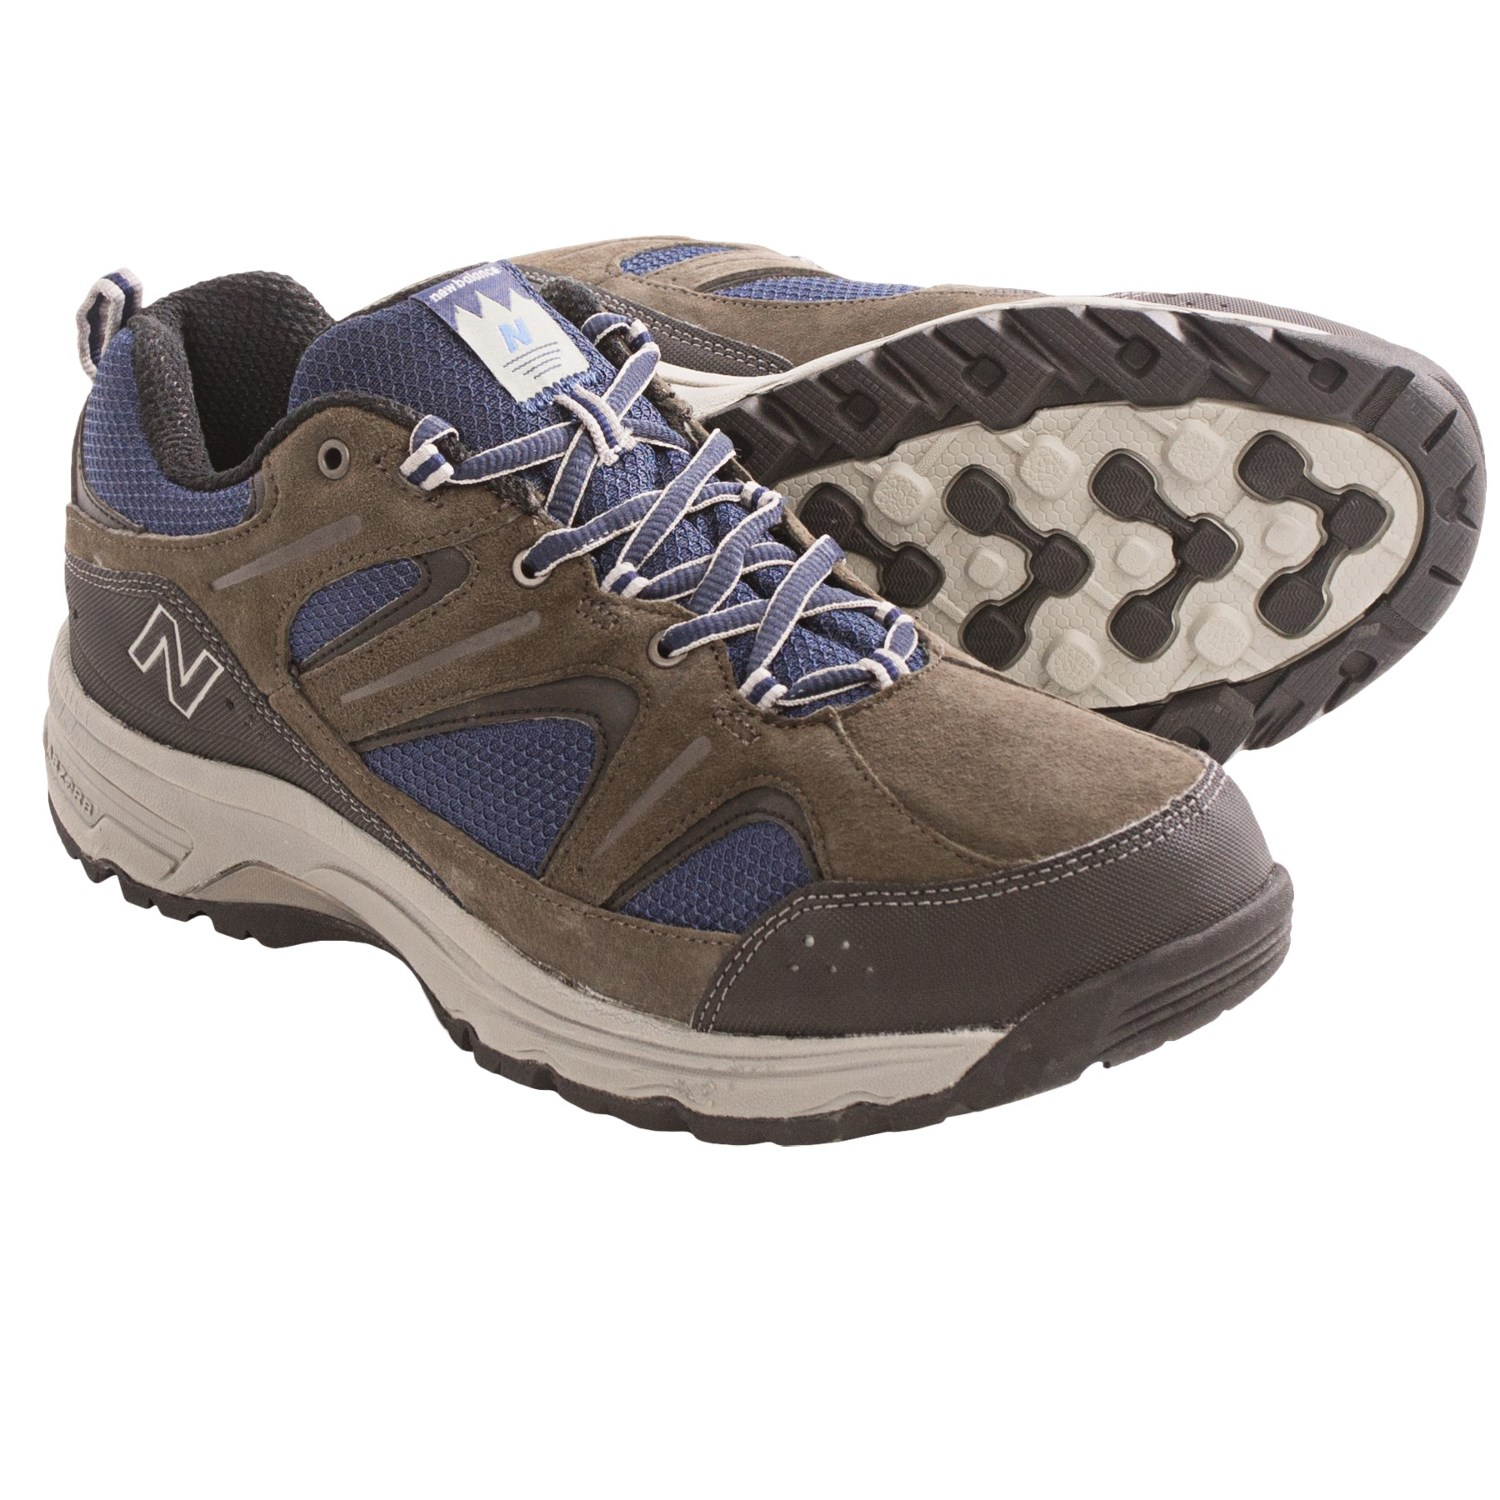 Submit Your Own Image · New Balance 759 Hiking Shoes - Lightweight